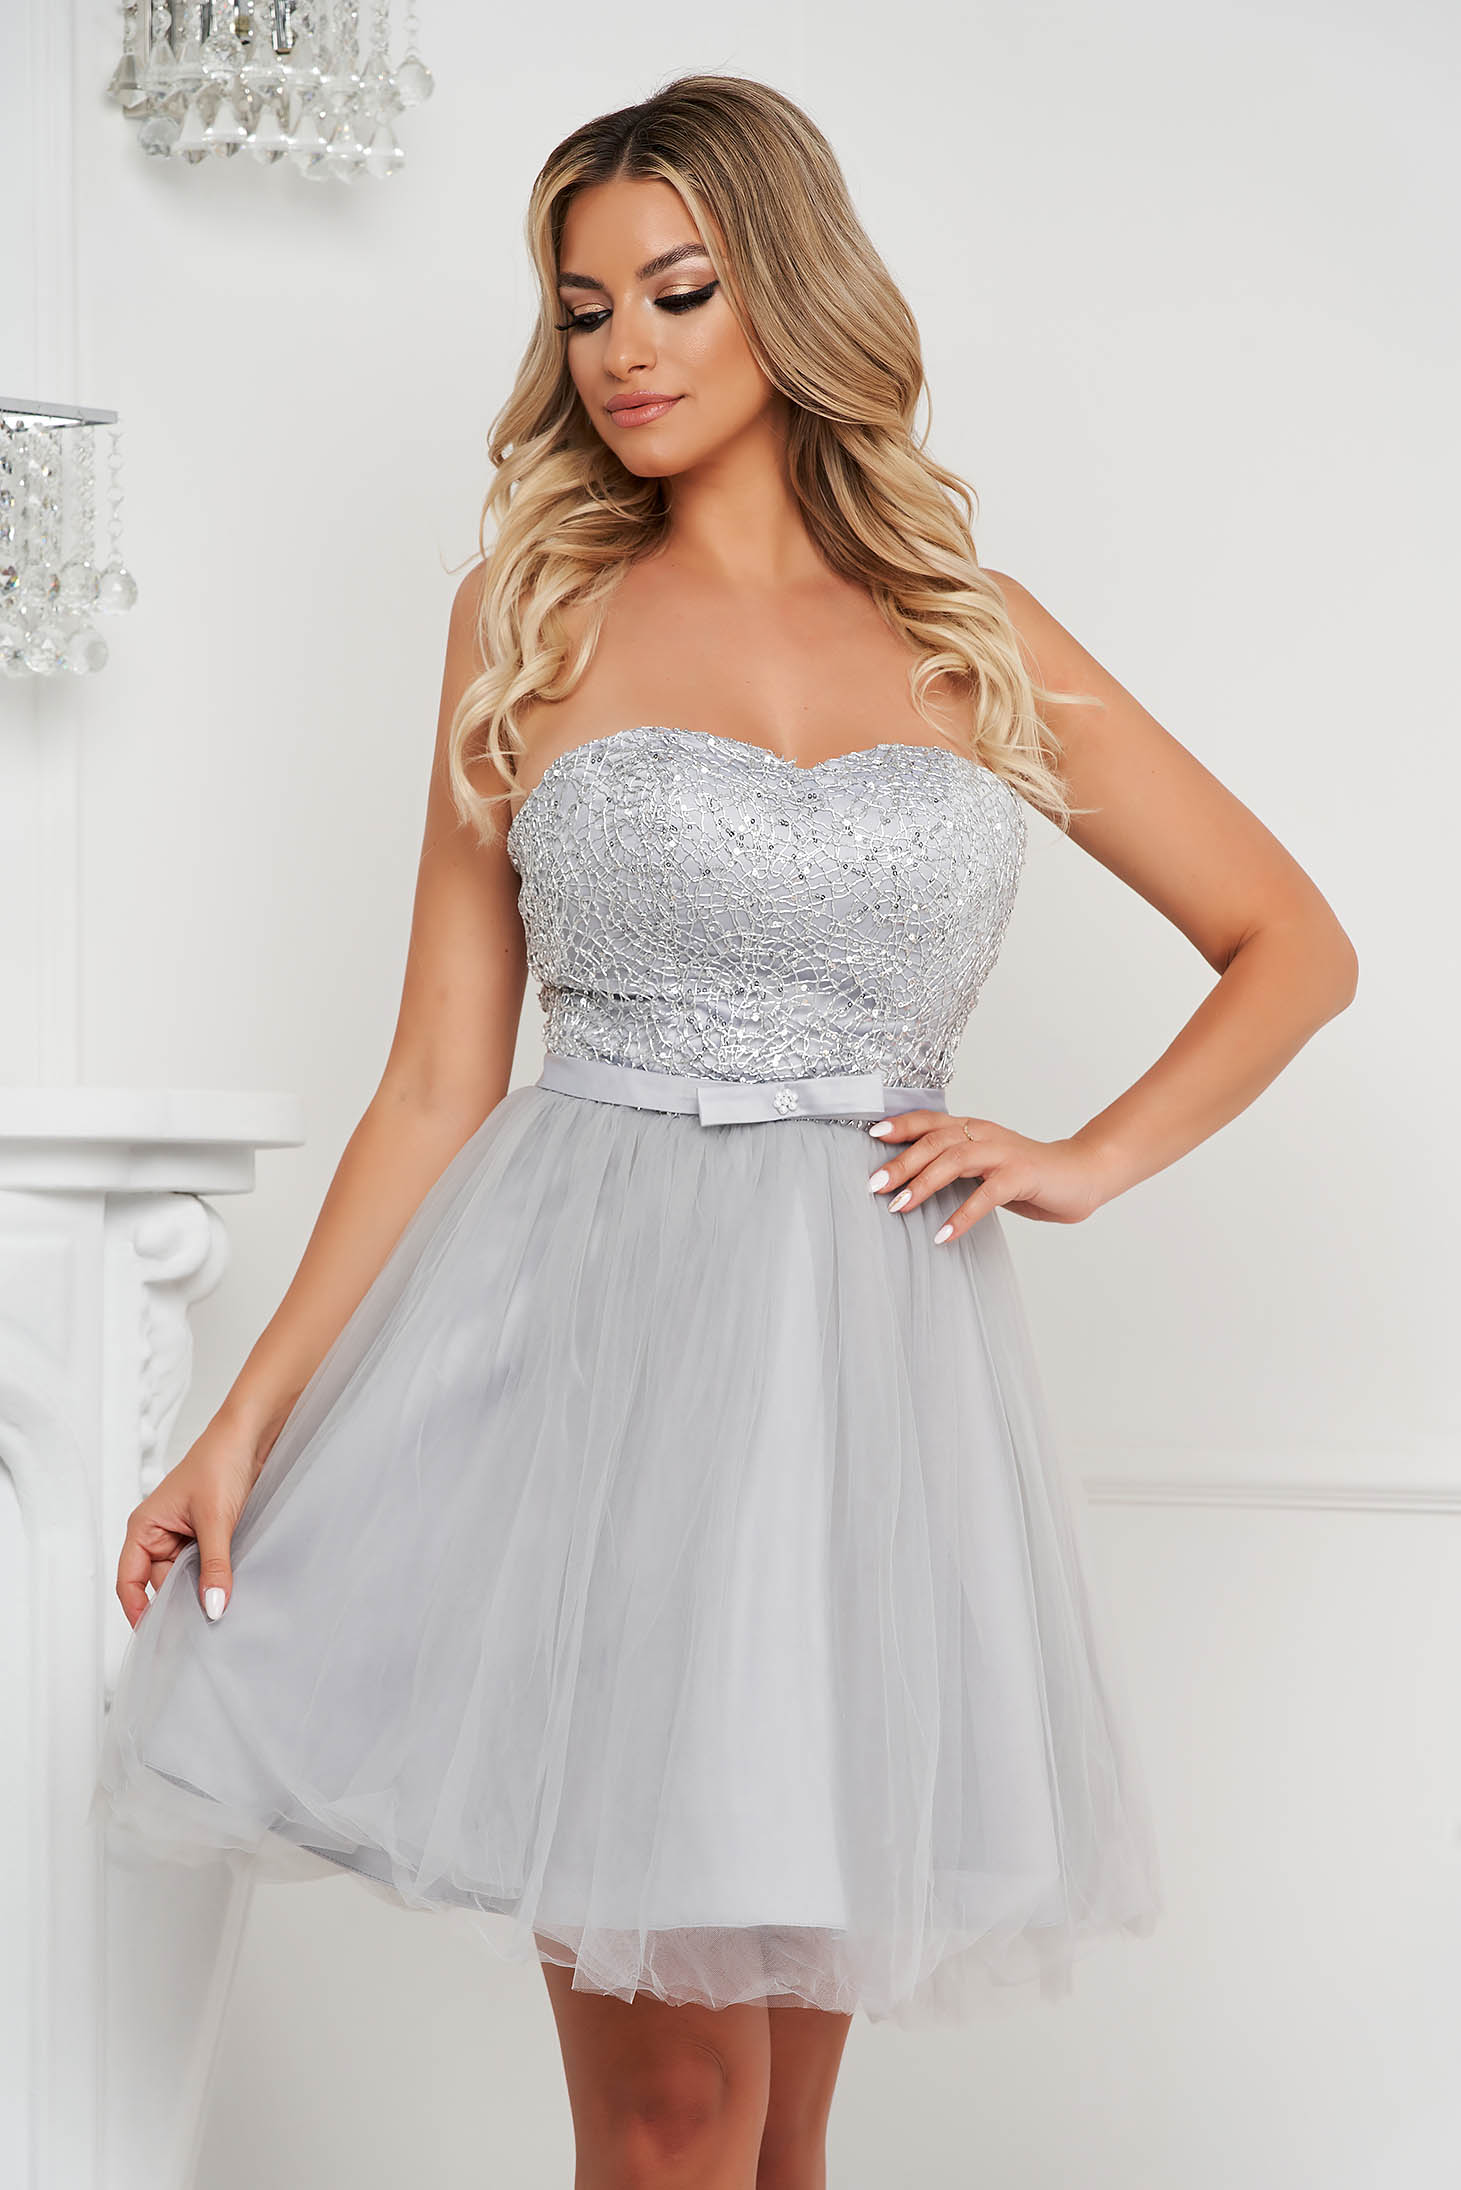 Grey dress short cut occasional cloche from tulle strapless with sequin embellished details